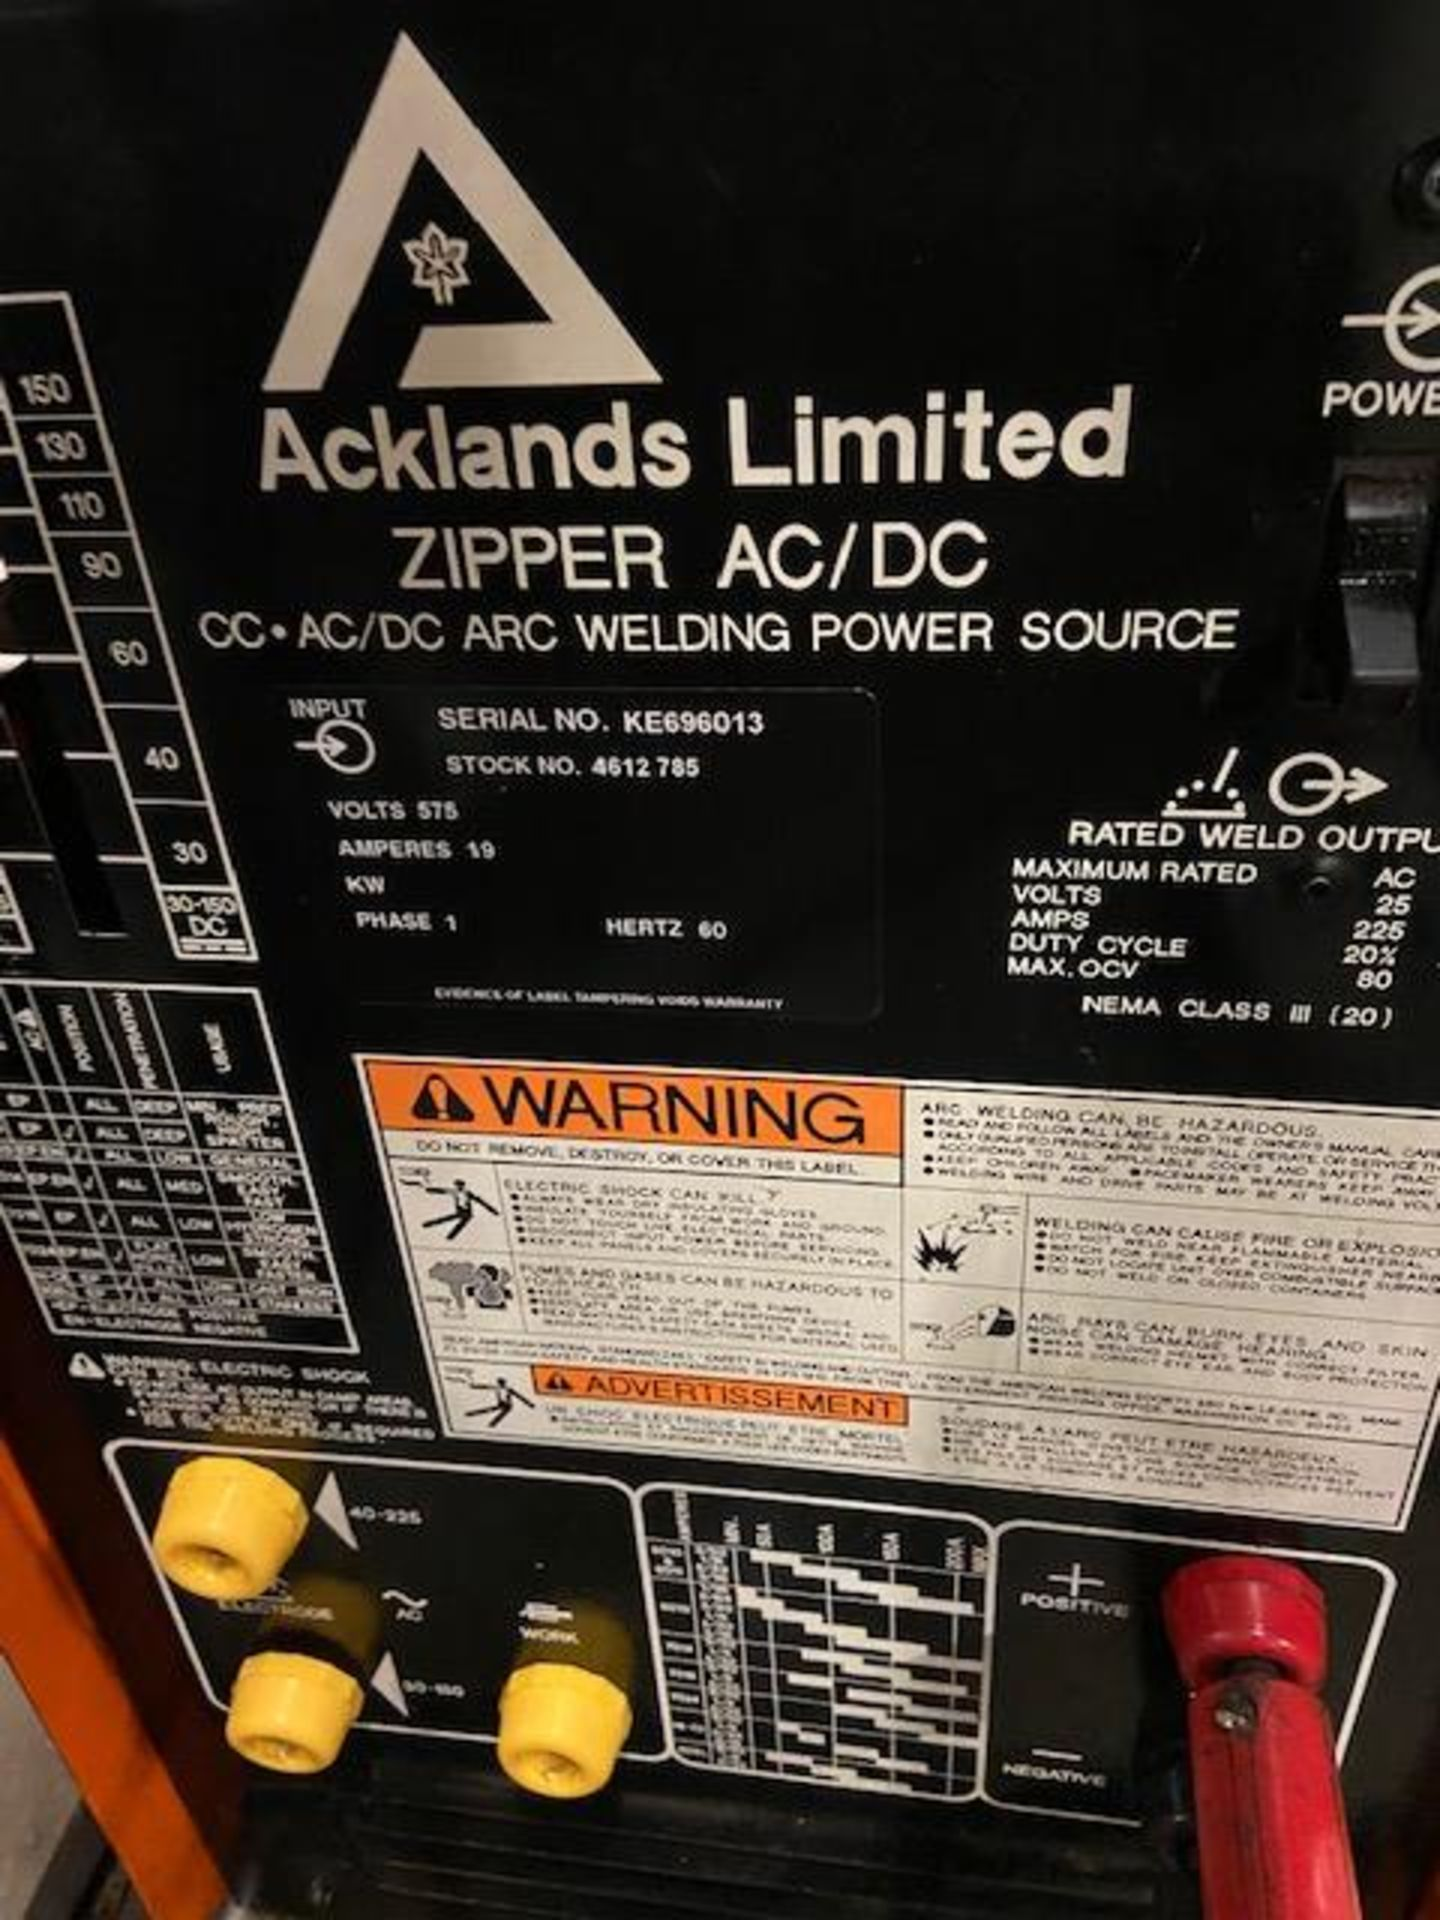 Acklands Liminted CC - AC/DC Arc Welding Stick Welder System 225A unit on cart with cables - Image 2 of 3